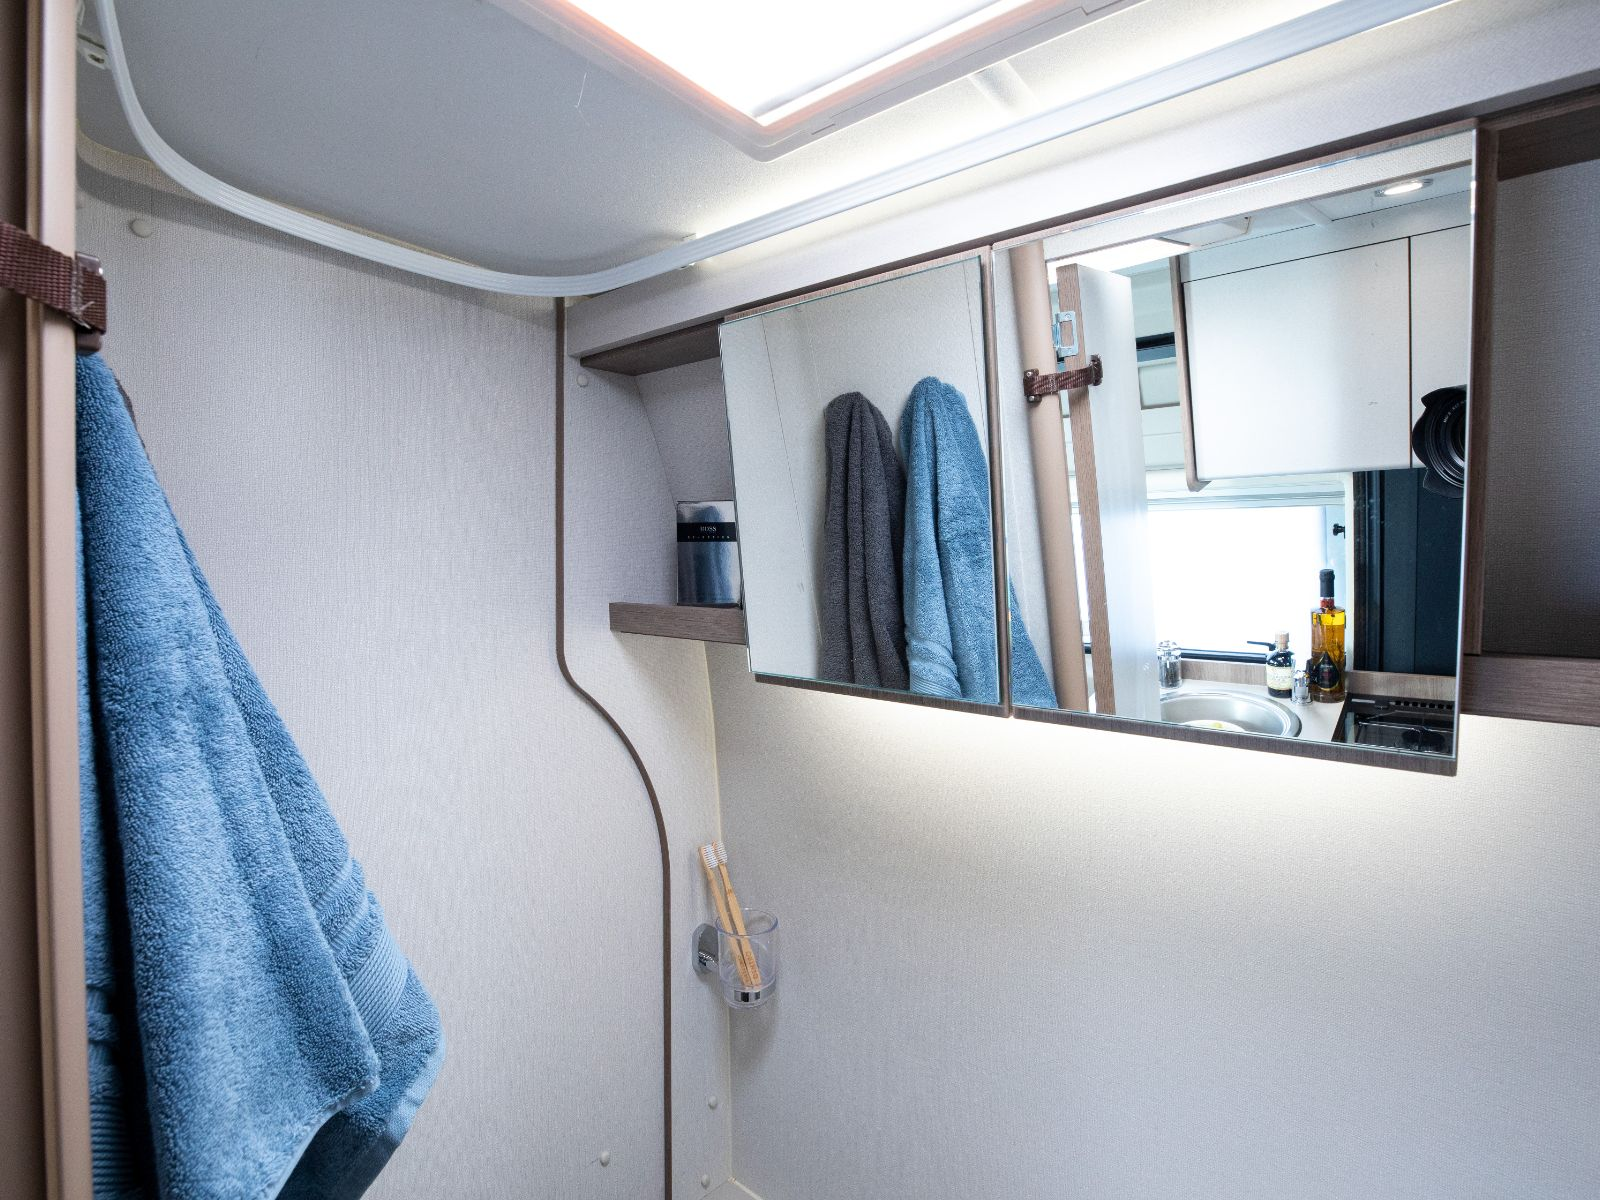 Bathroom mirrors with towels in reflection and toiletries stored next to them'